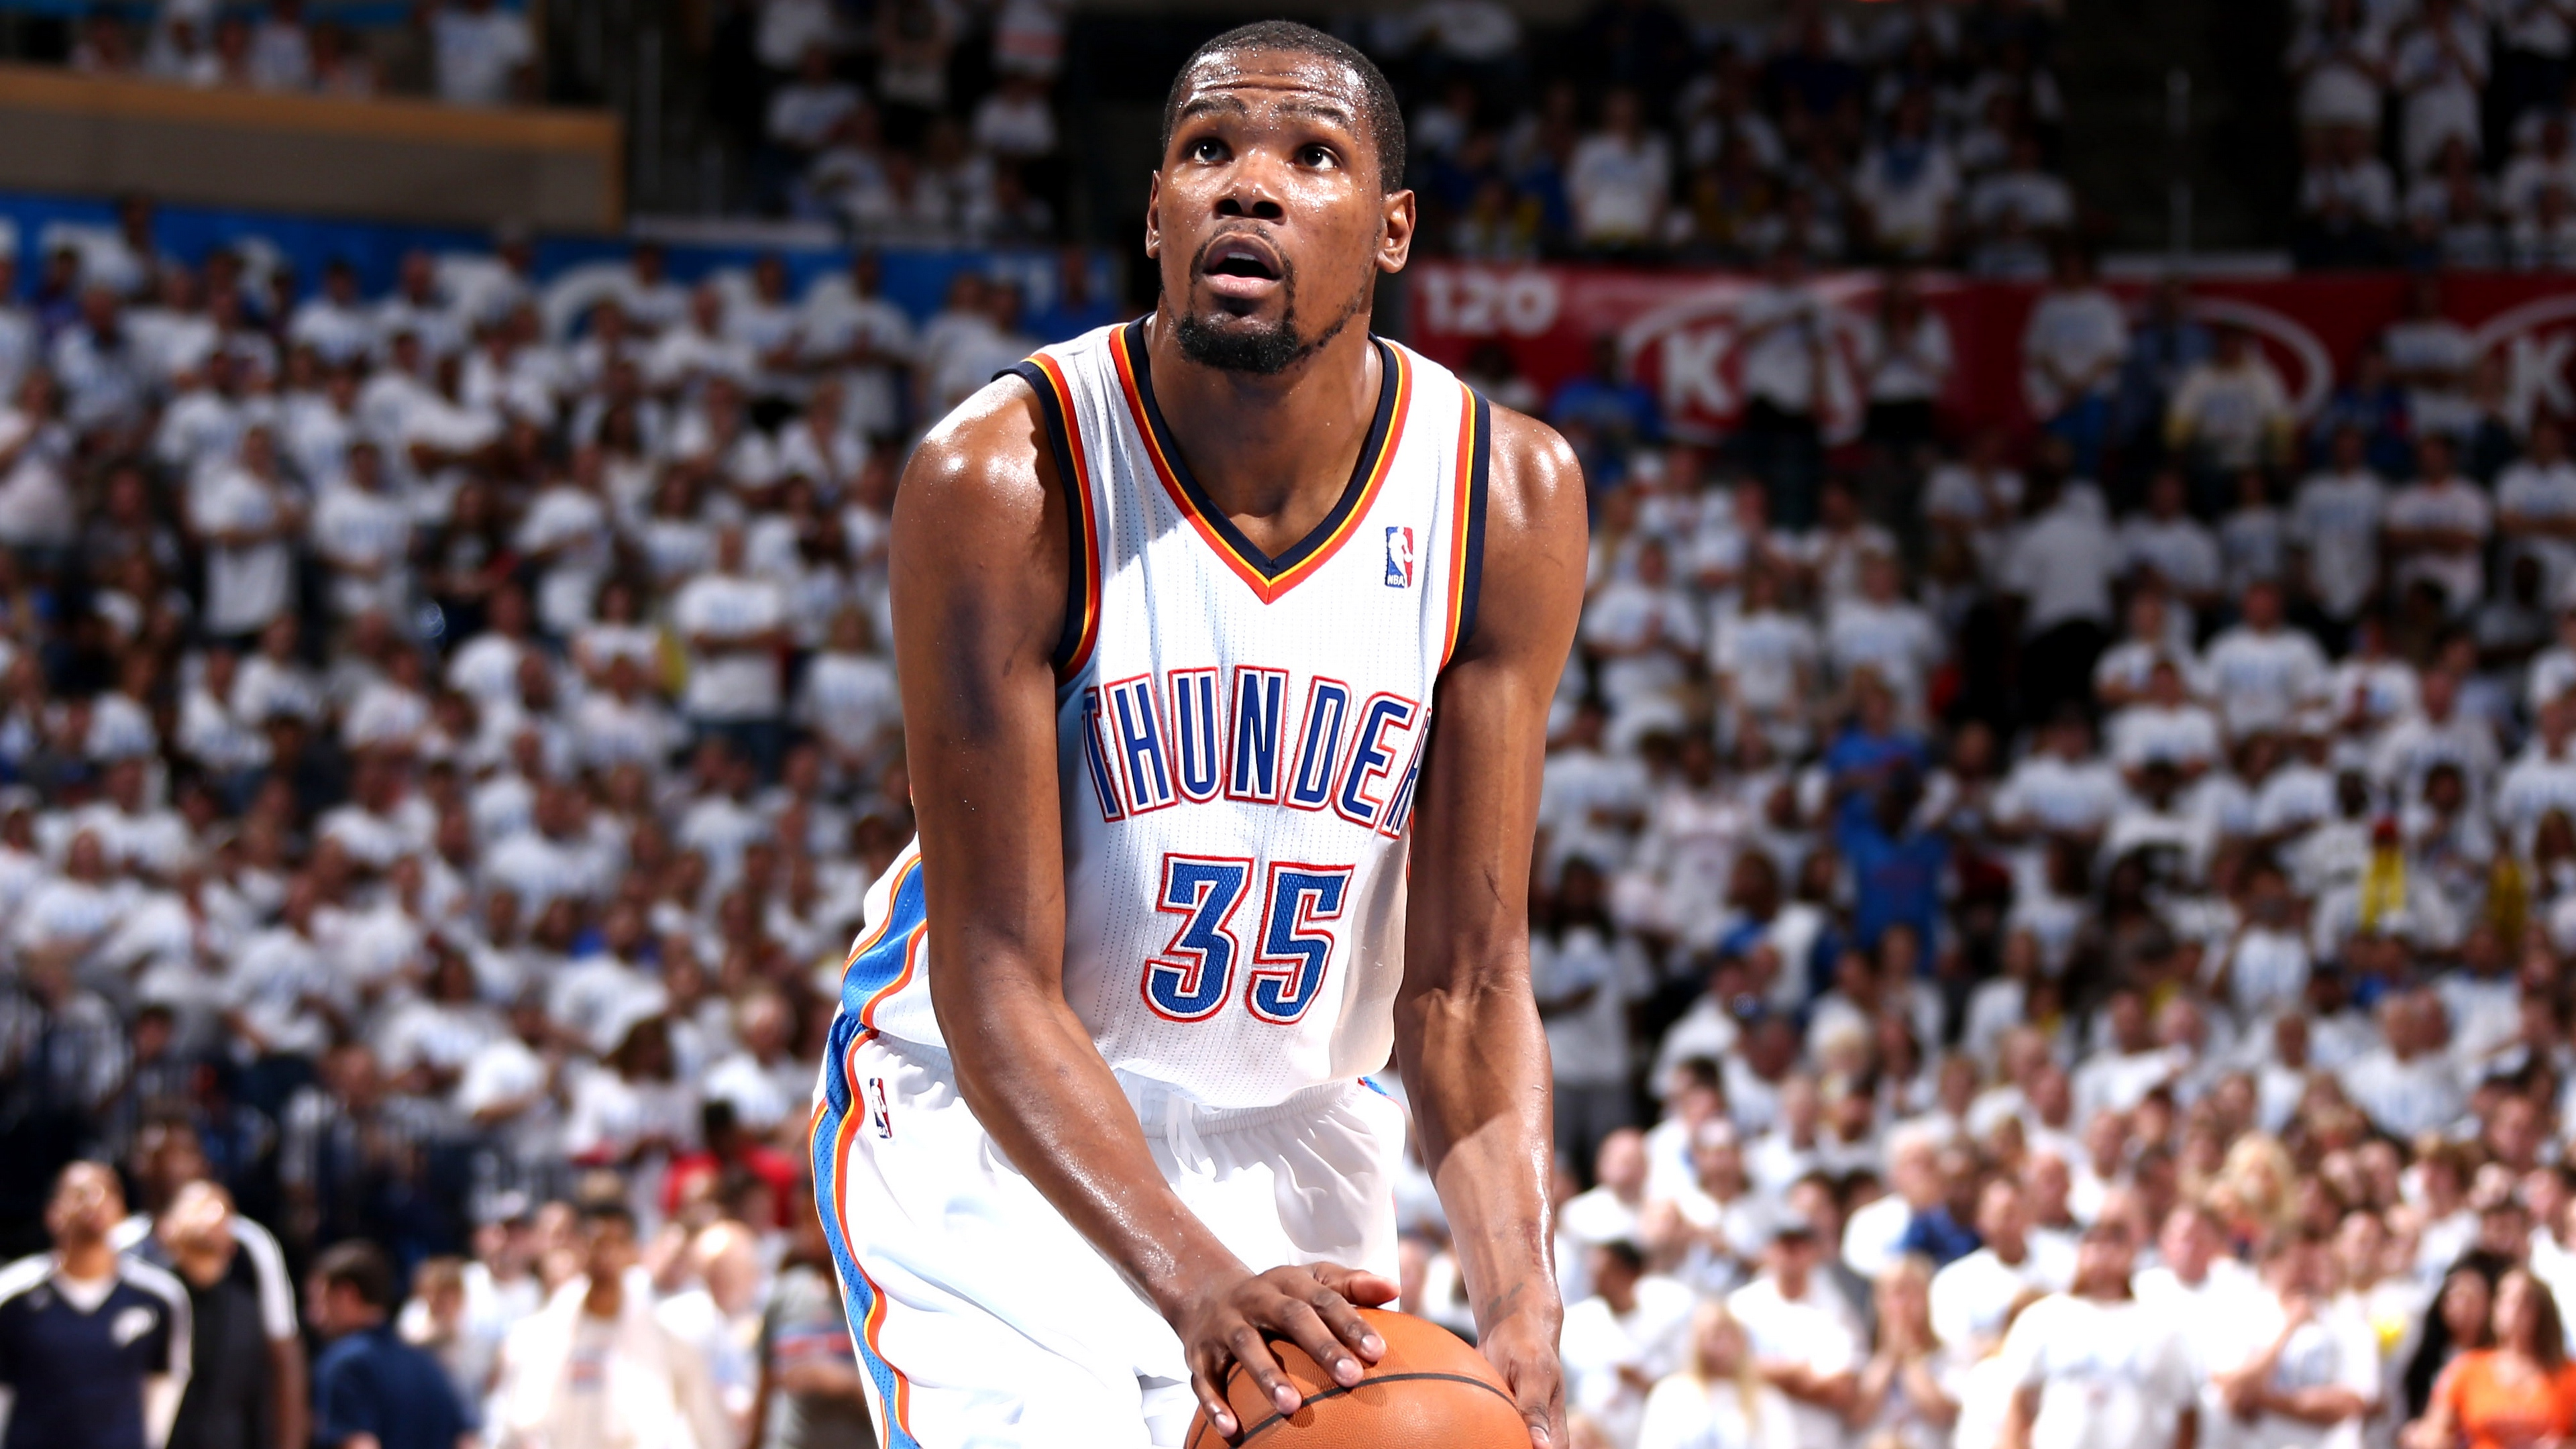 kevin durant basketball seattle supersonics oklahoma city thunder 4k 1540062297 - kevin durant, basketball, seattle supersonics, oklahoma city thunder 4k - seattle supersonics, kevin durant, Basketball